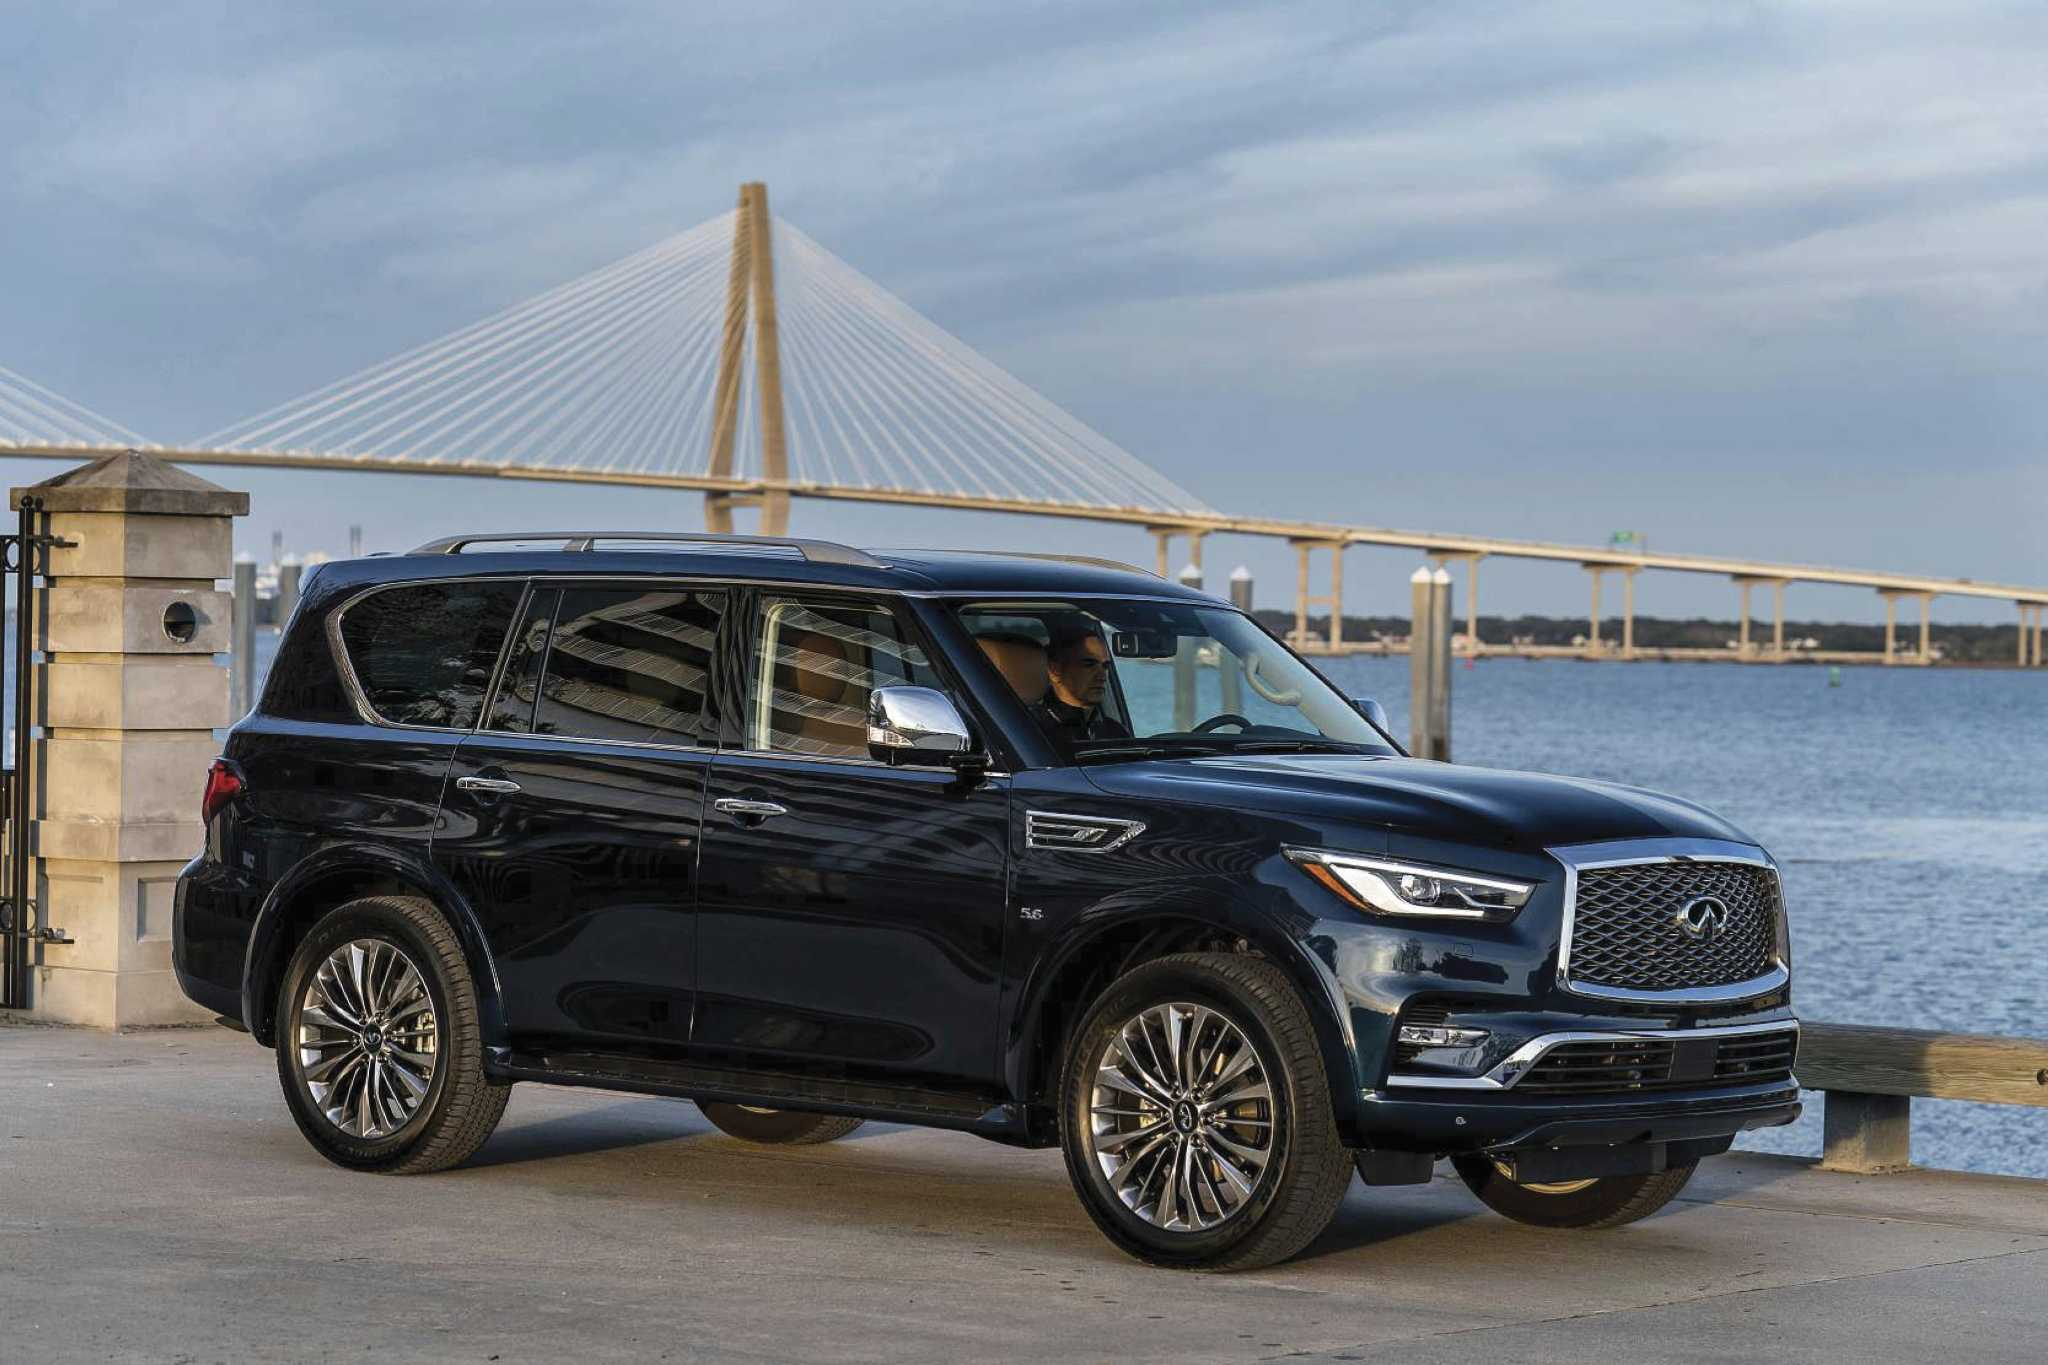 Infiniti QX80: Full-size luxury SUV brings elegance, technology to the family hauler